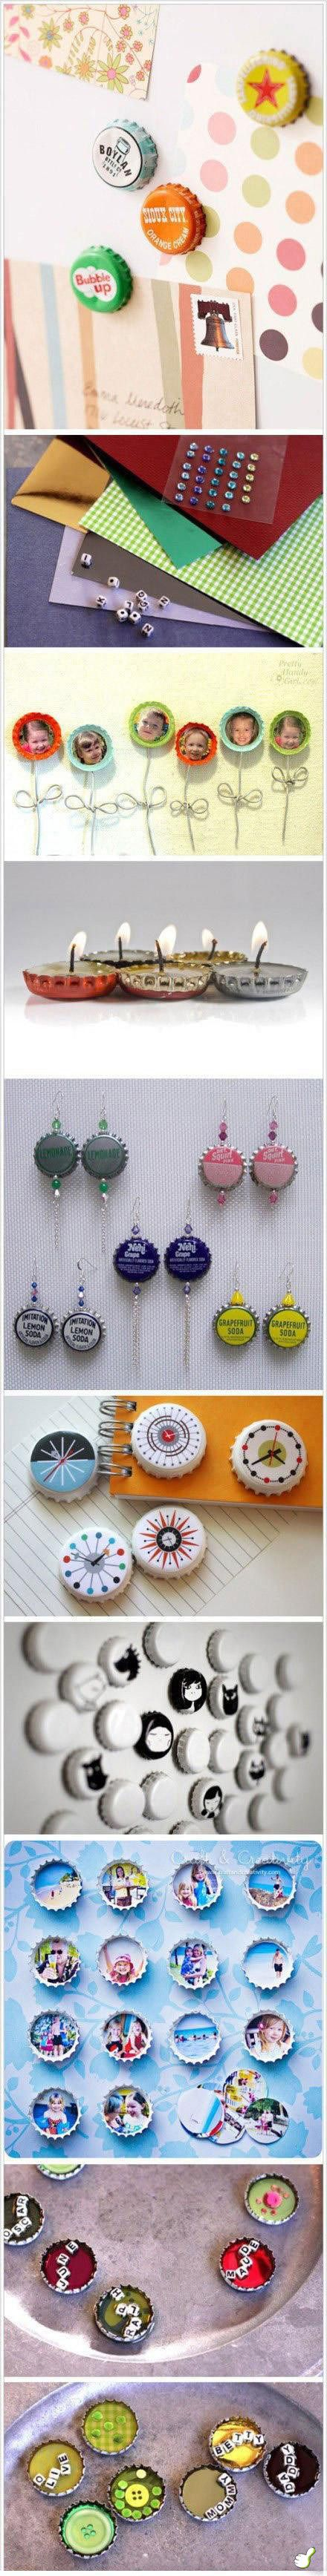 33 best images about craft ideas with beer bottle tops on for Cool beer cap ideas